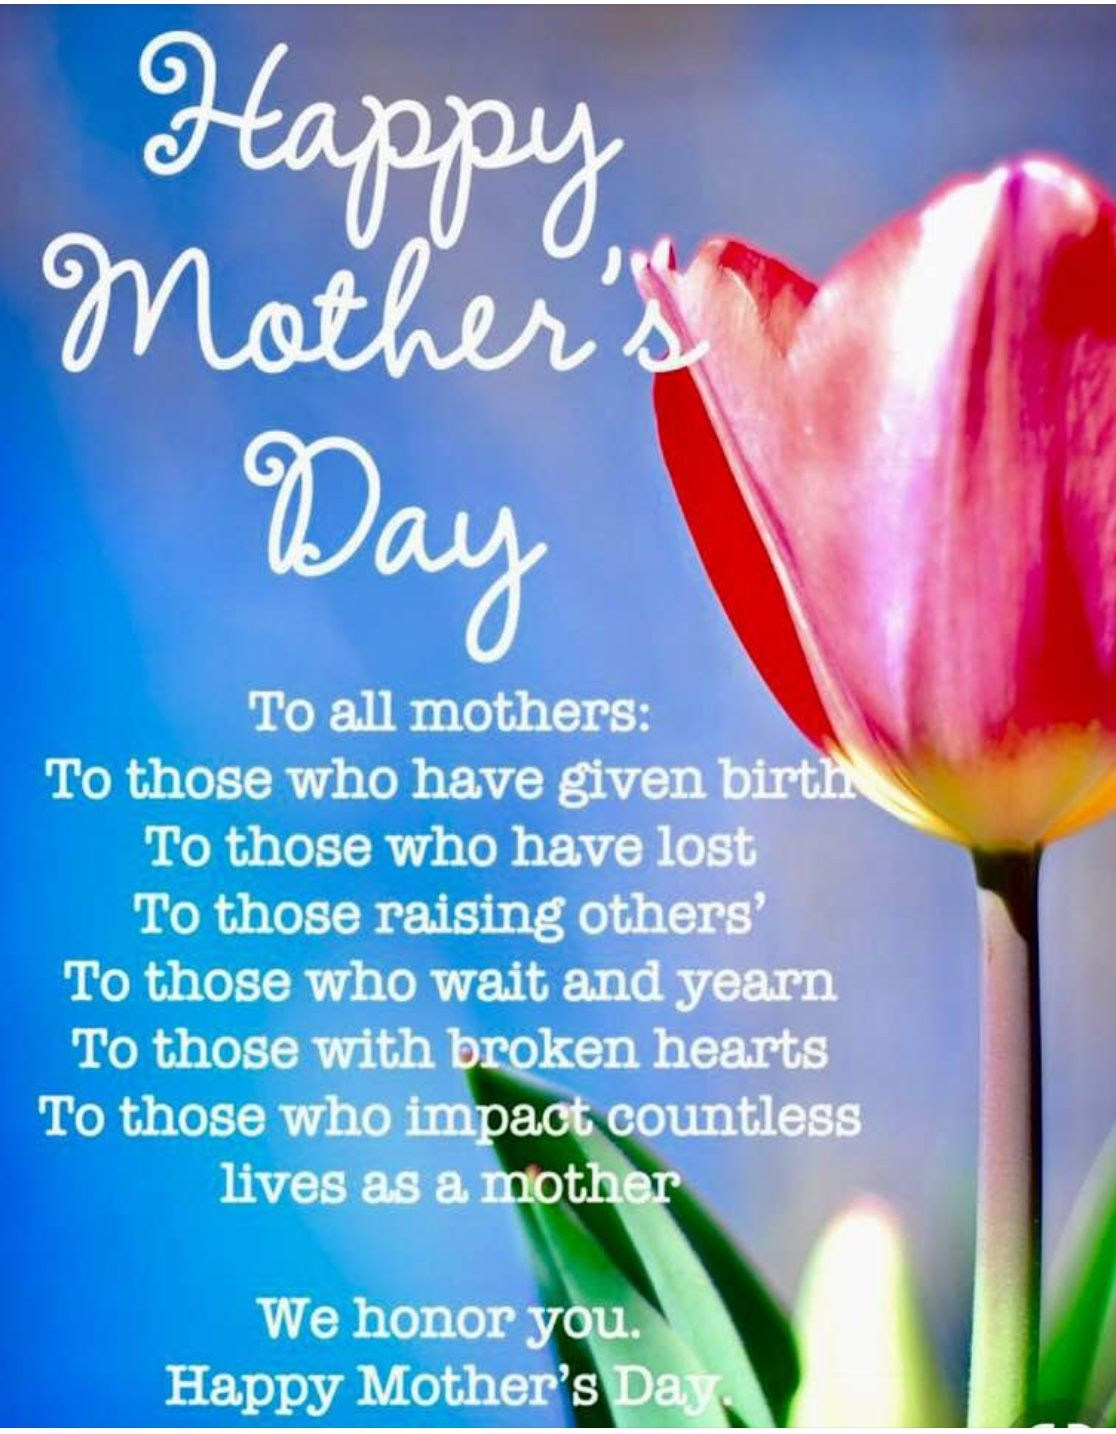 Happy mothers image by dympna reidy on mothers day